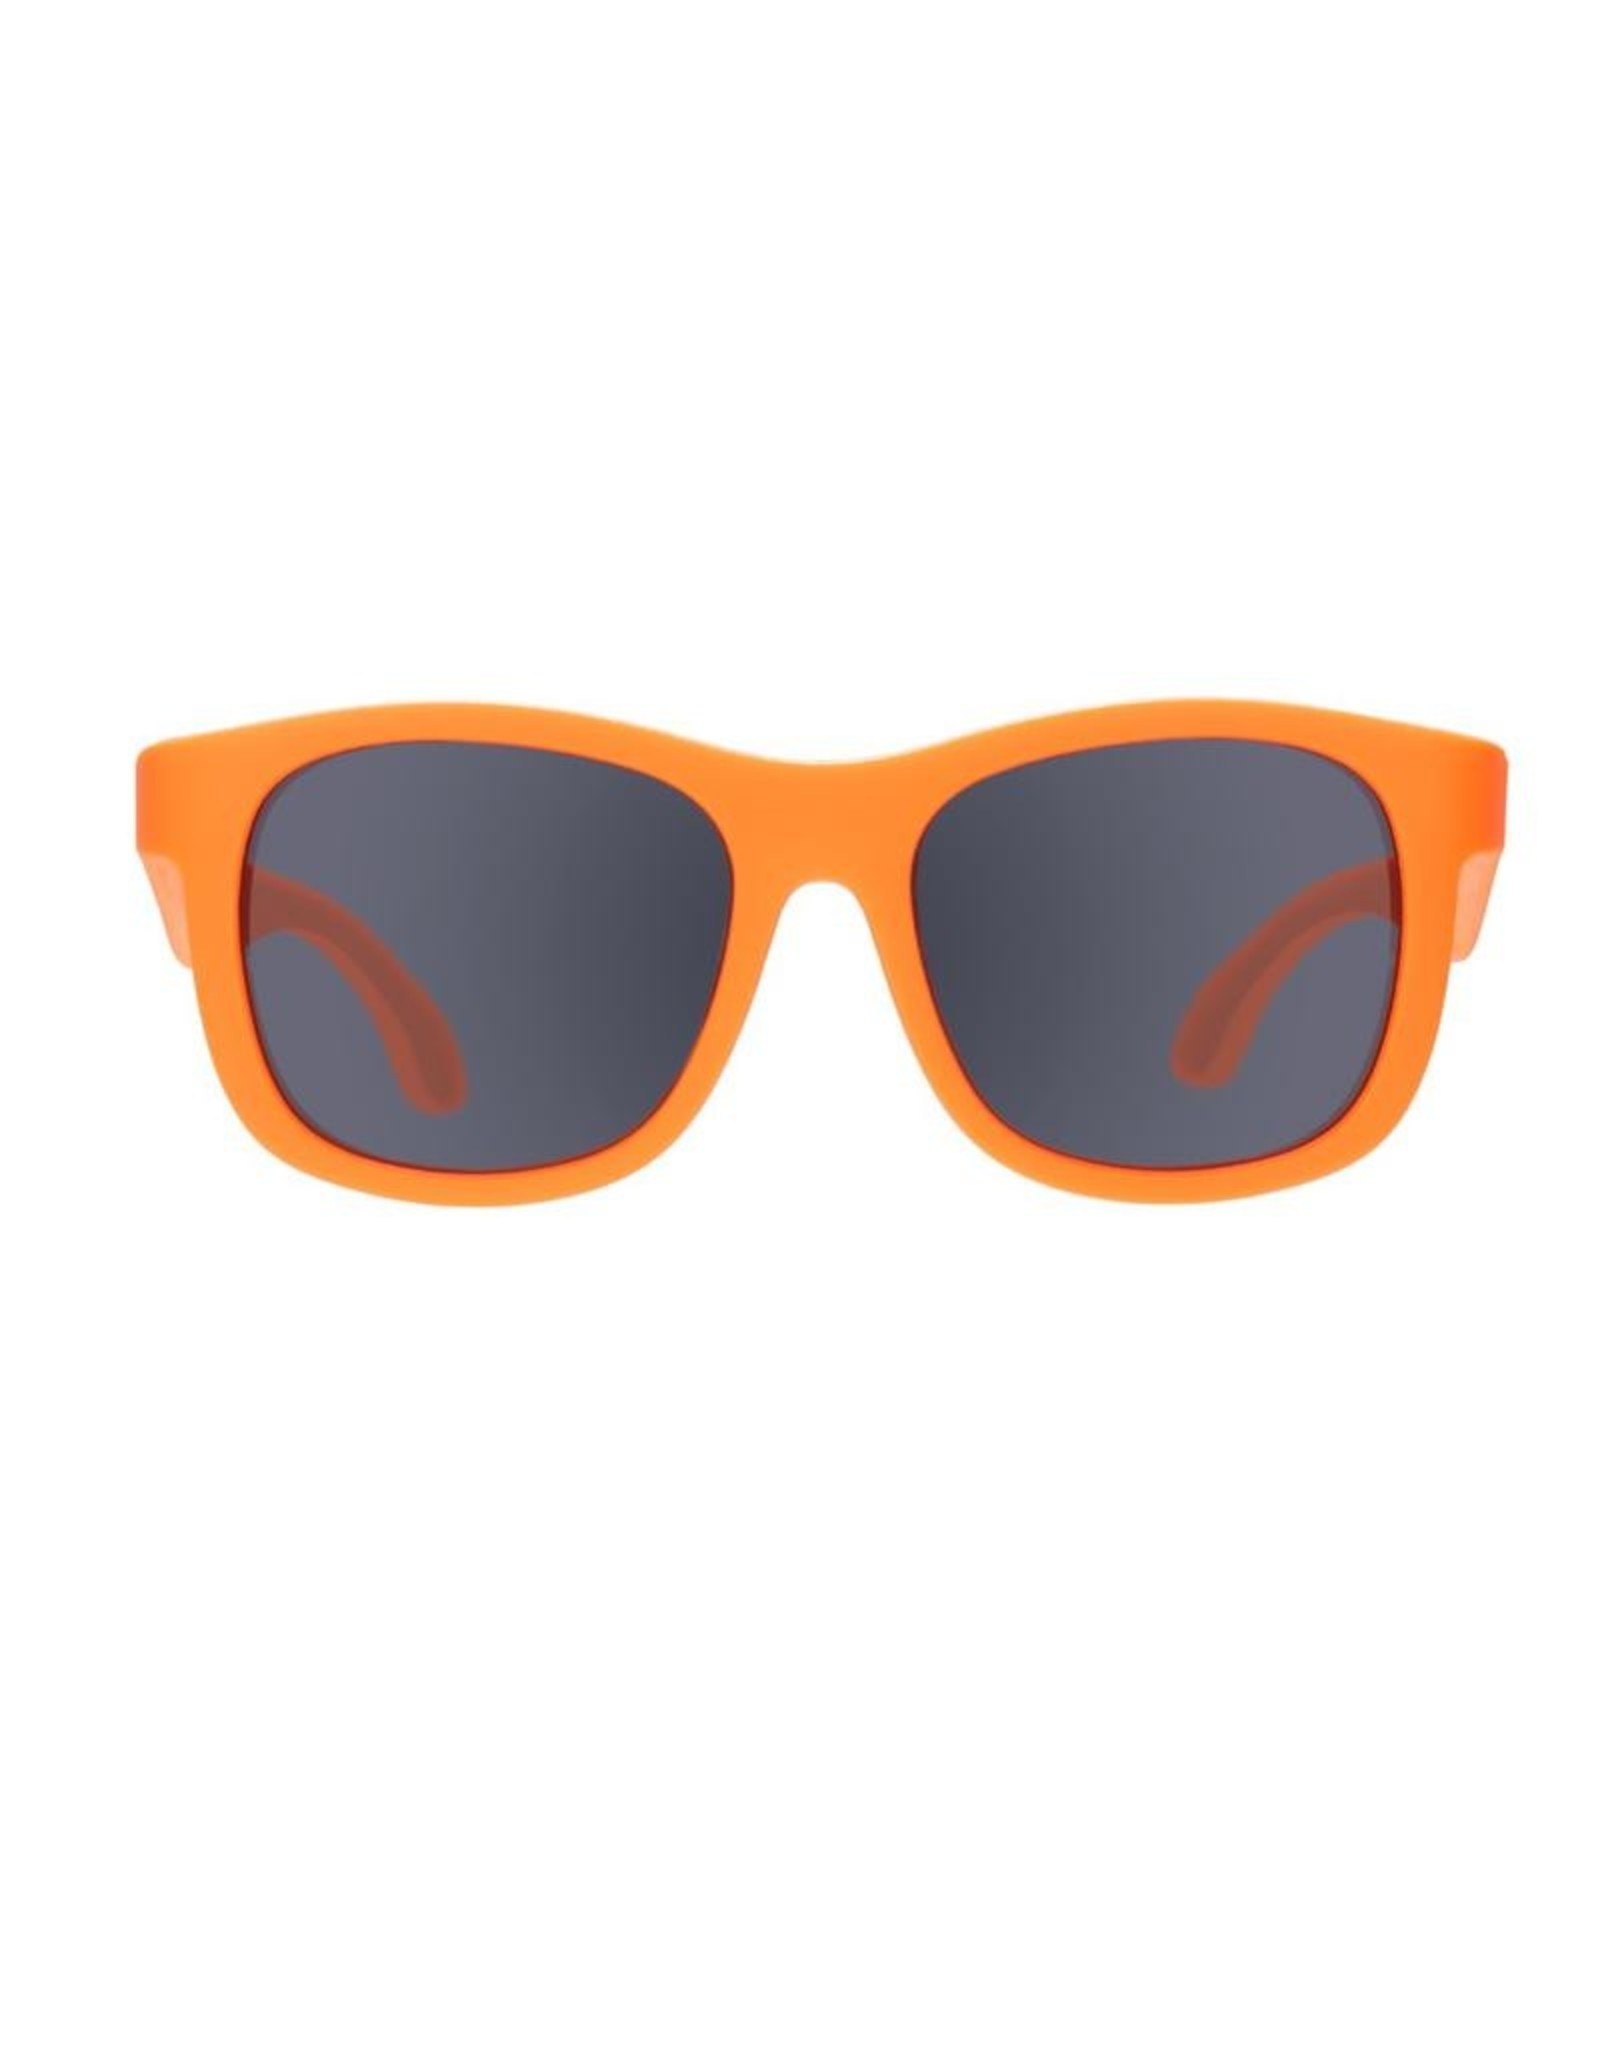 Babiators Original Navigator Orange Crush Sunglasses